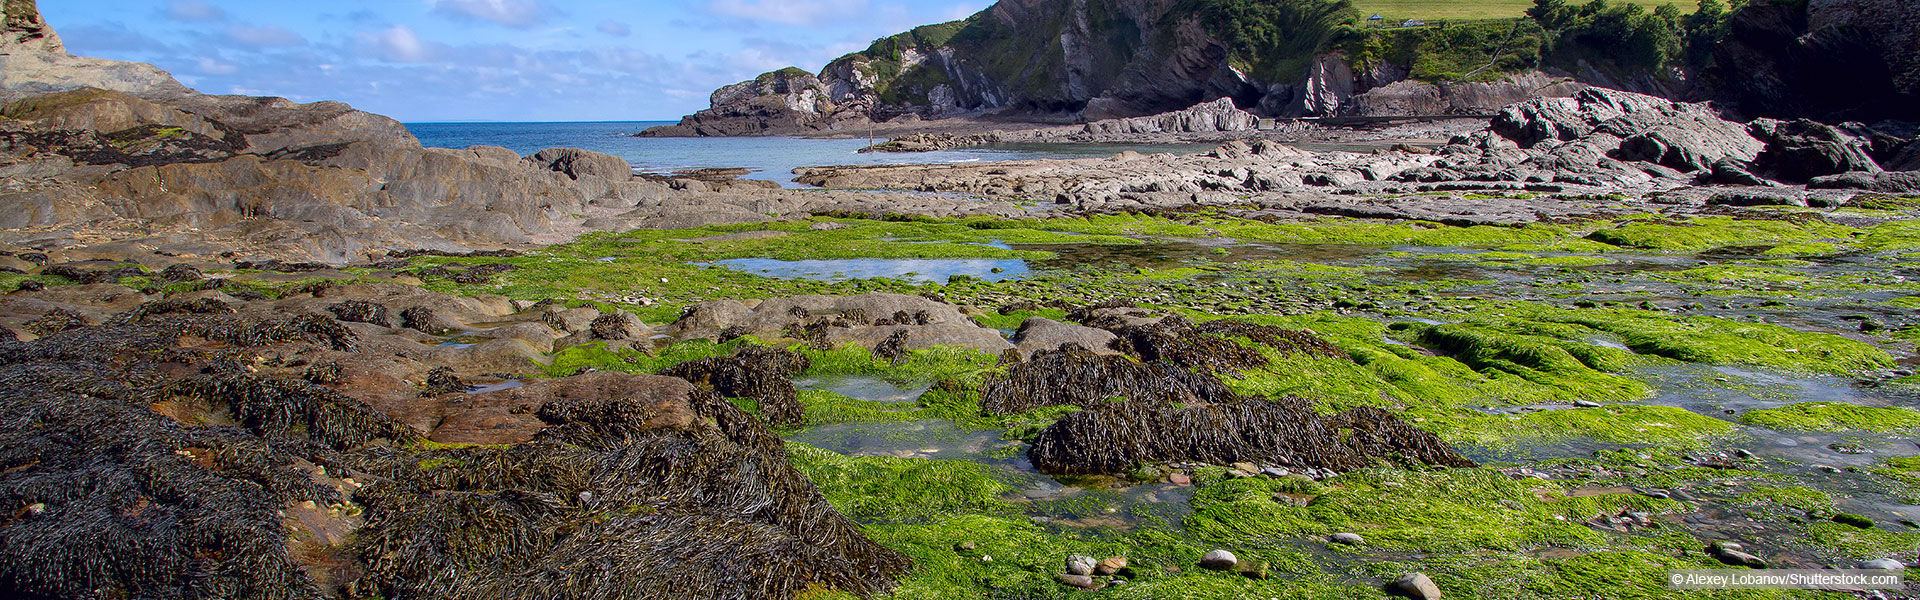 Beach in Devon covered in seaweed